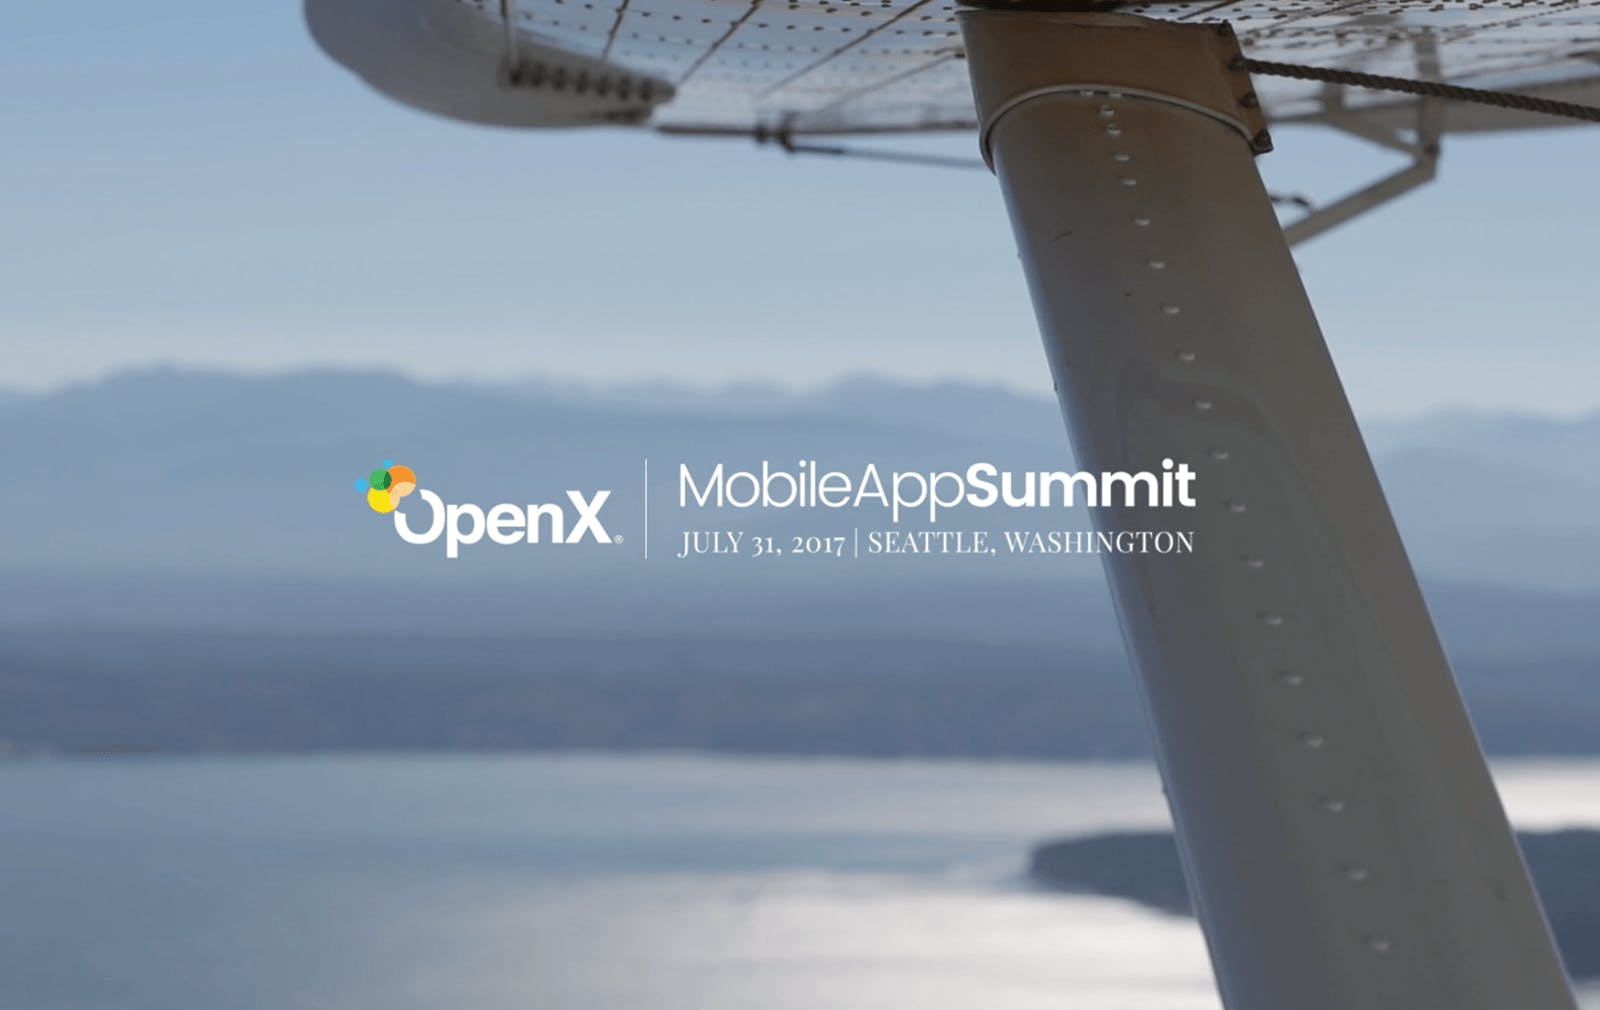 OpenX Mobile App Summit 2017 Highlights